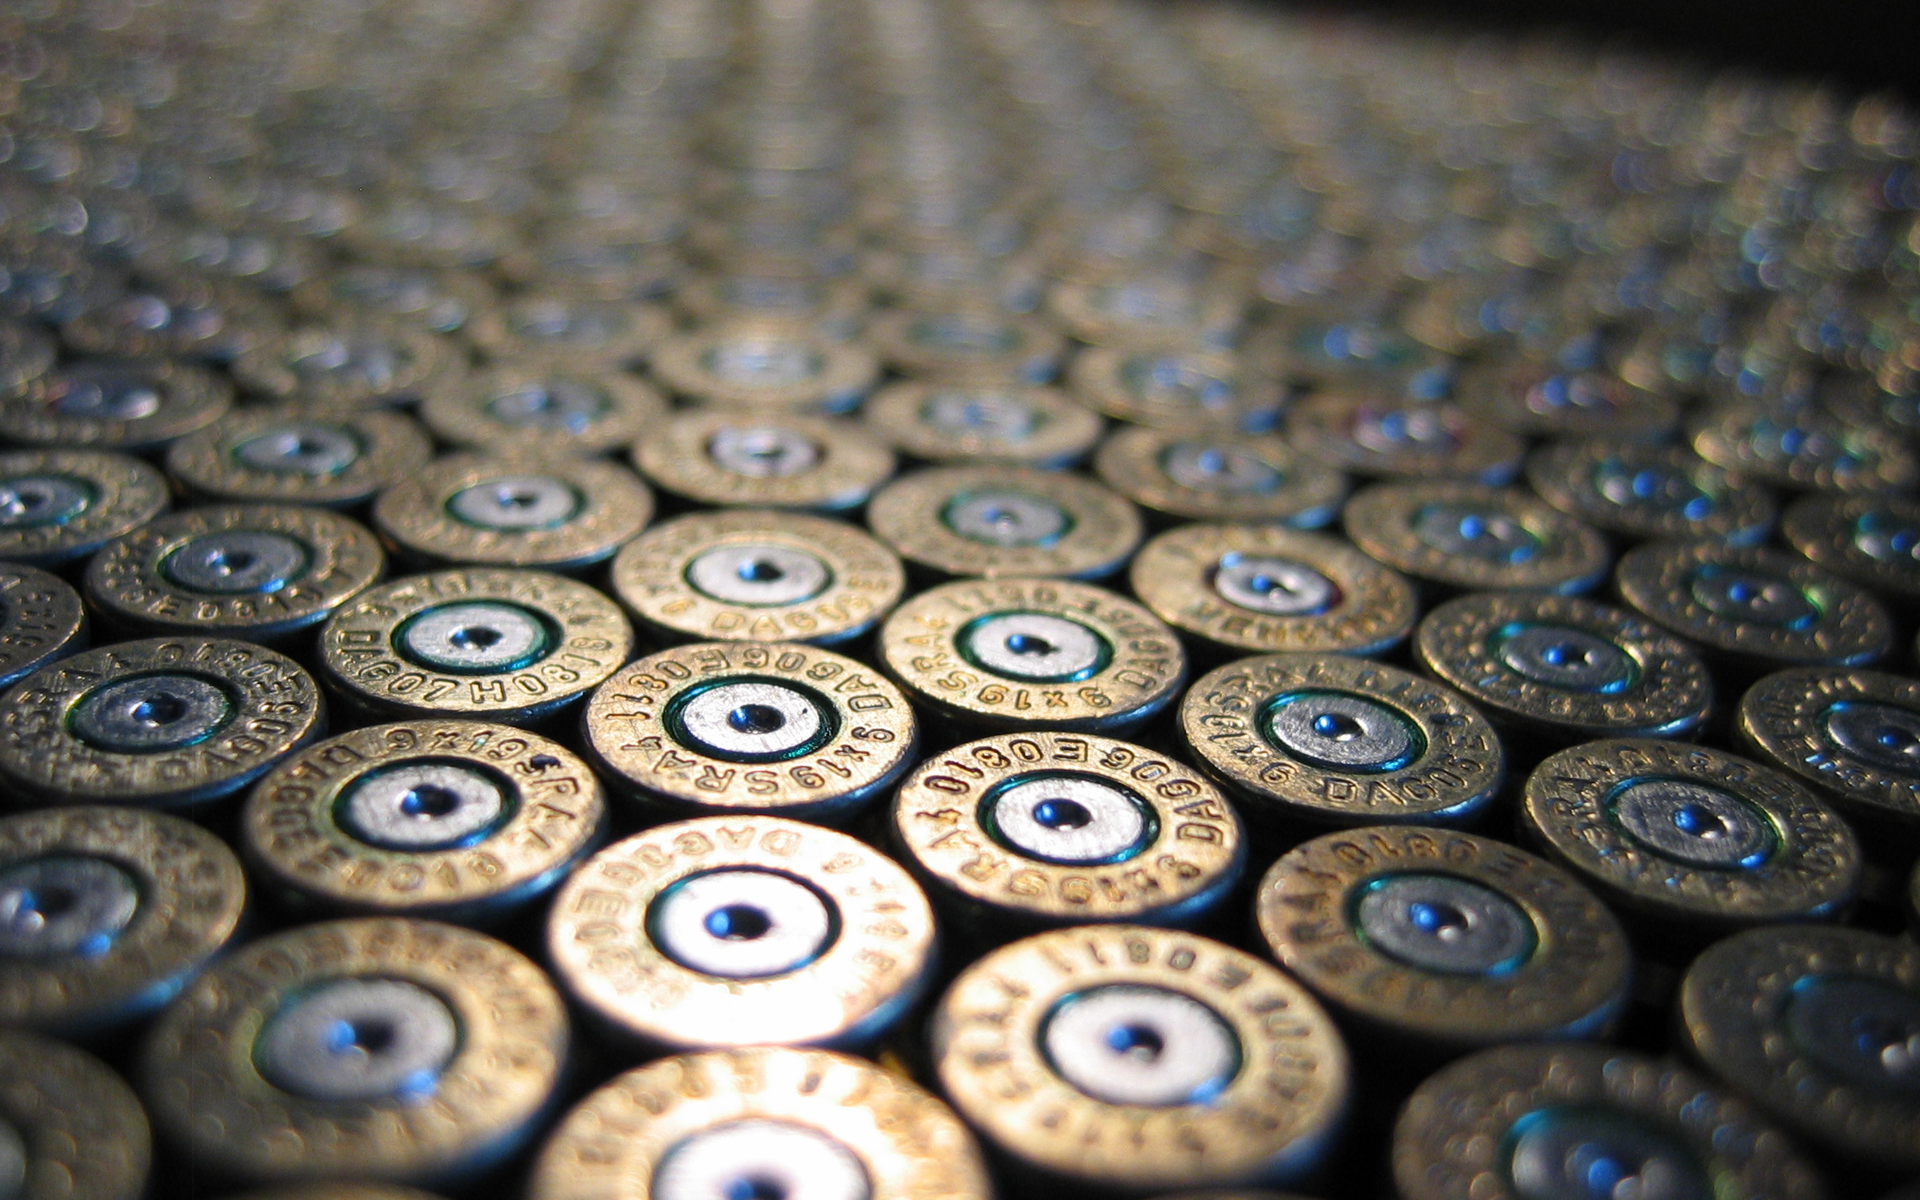 Fine HD Wallpapers Collection of Ammo - 1920x1200, 01.22.15